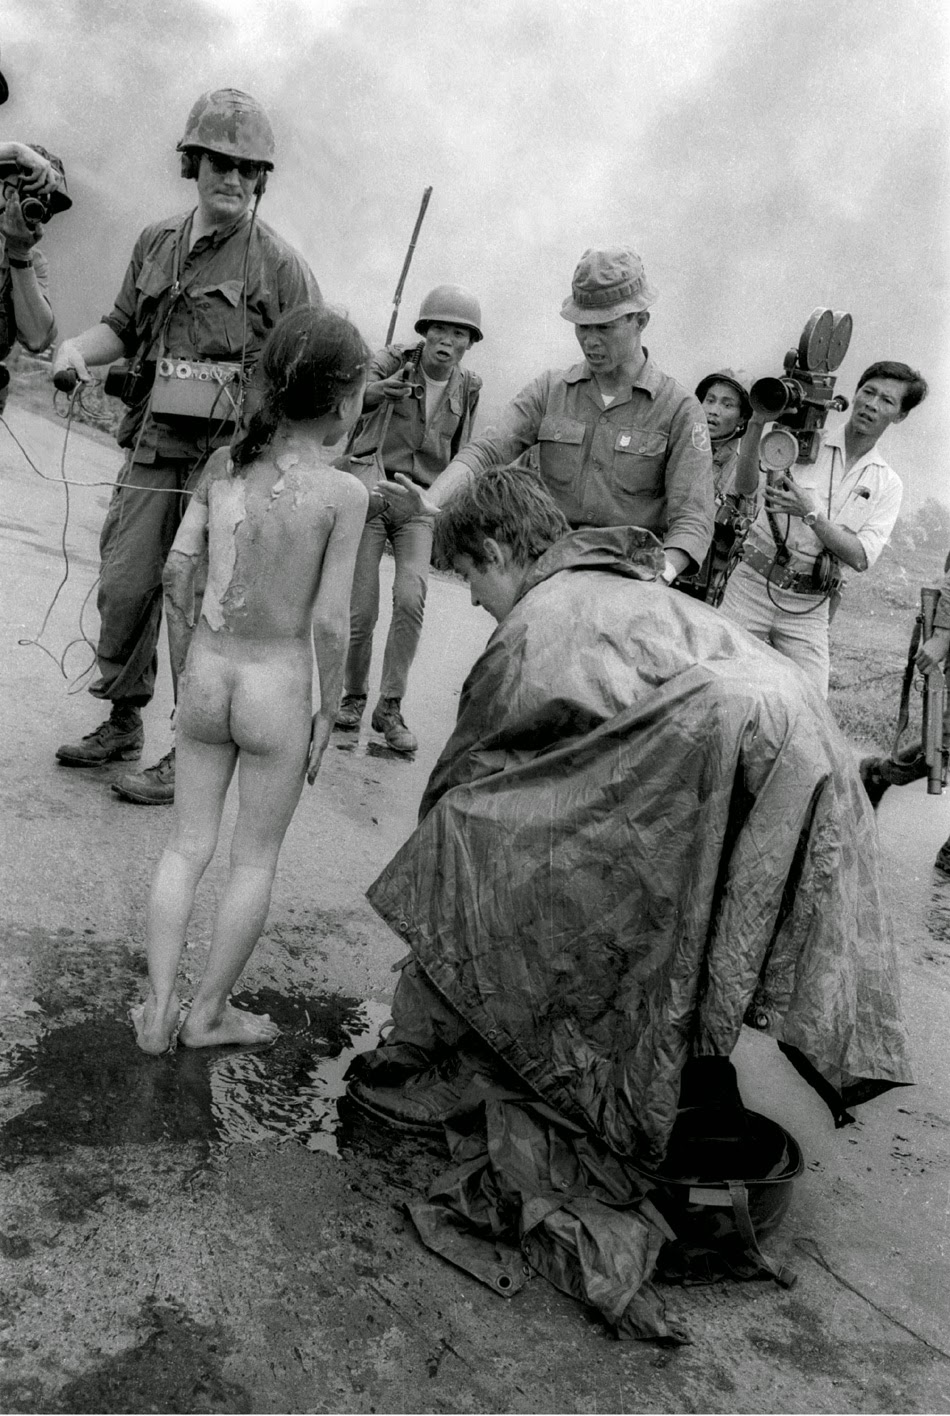 'Napalm girl' Phan Thị Kim Phúc – one moment later